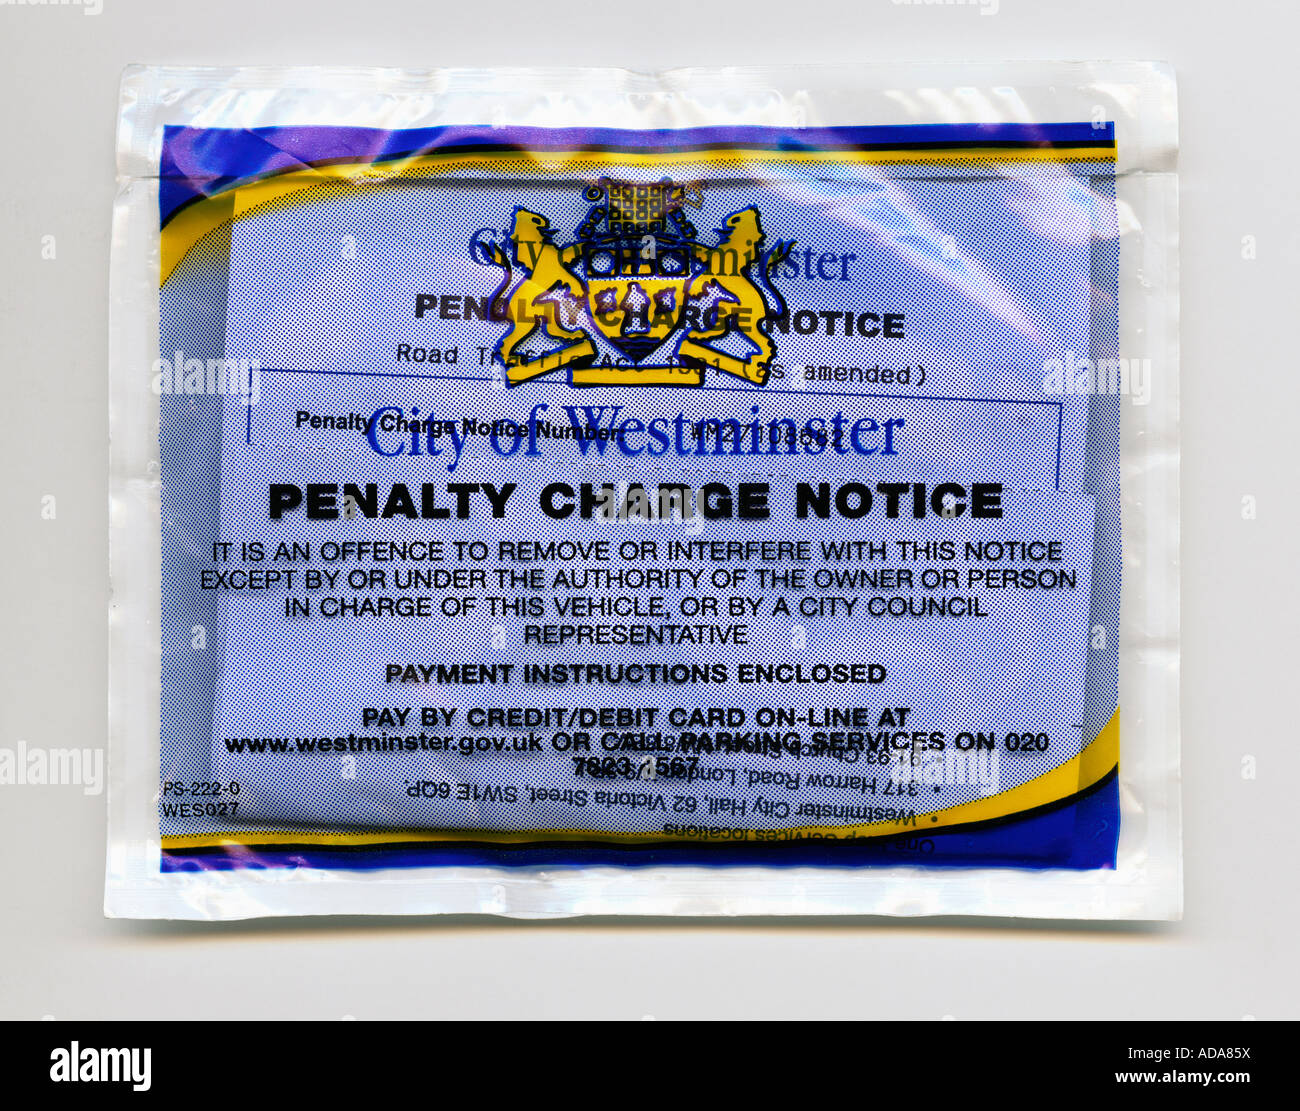 Close up of City of Westminster parking penalty charge notice bag - Stock Image